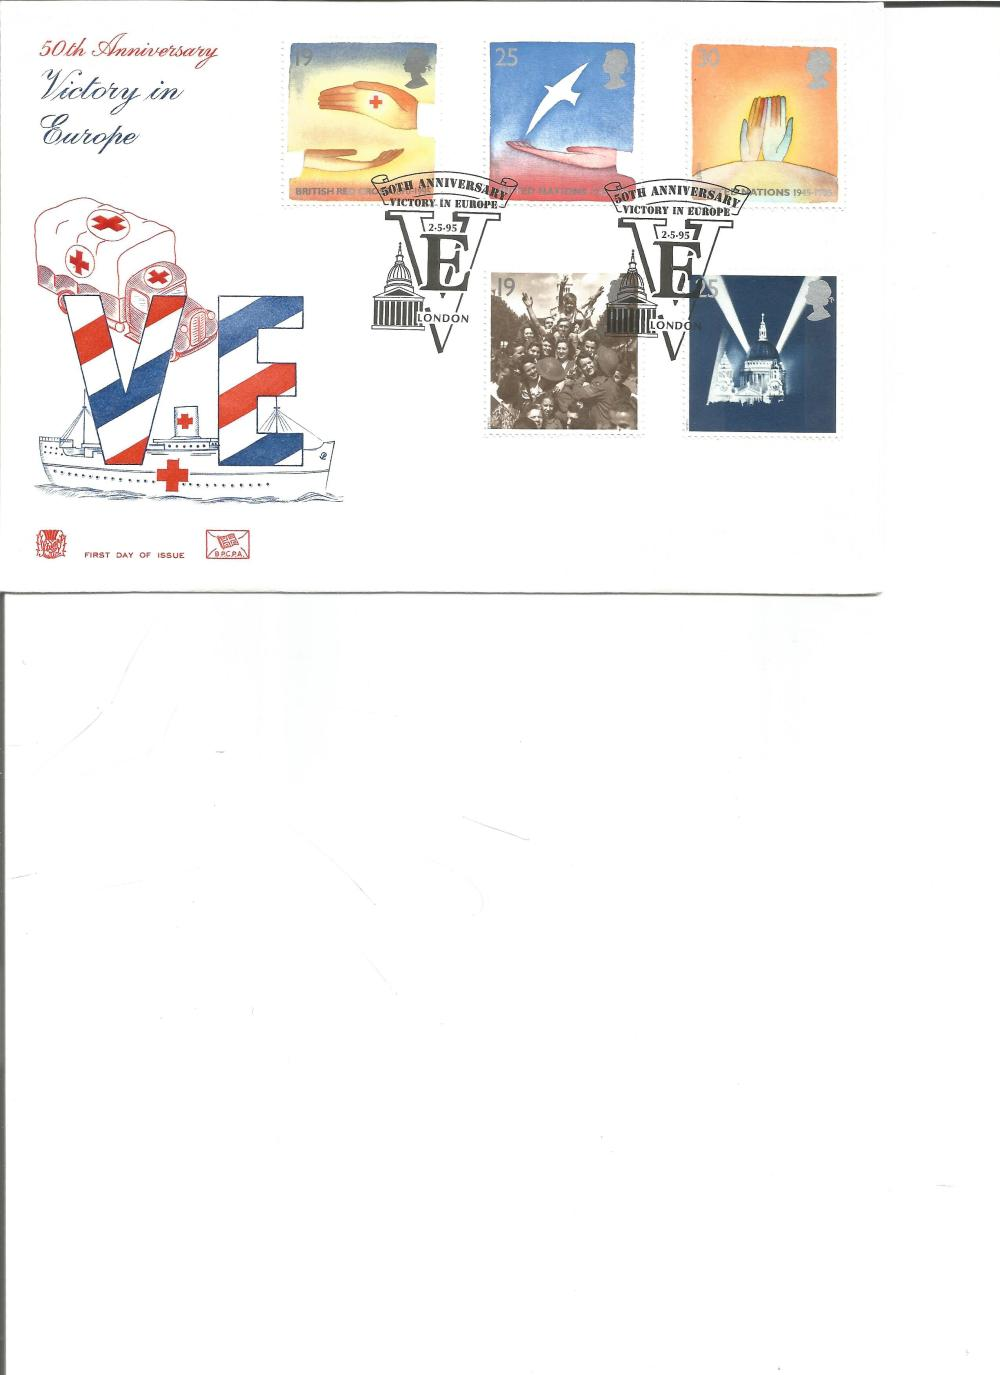 FDC 50TH Anniversary Victory in Europe c/w set of five commemorative stamps double PM 50th